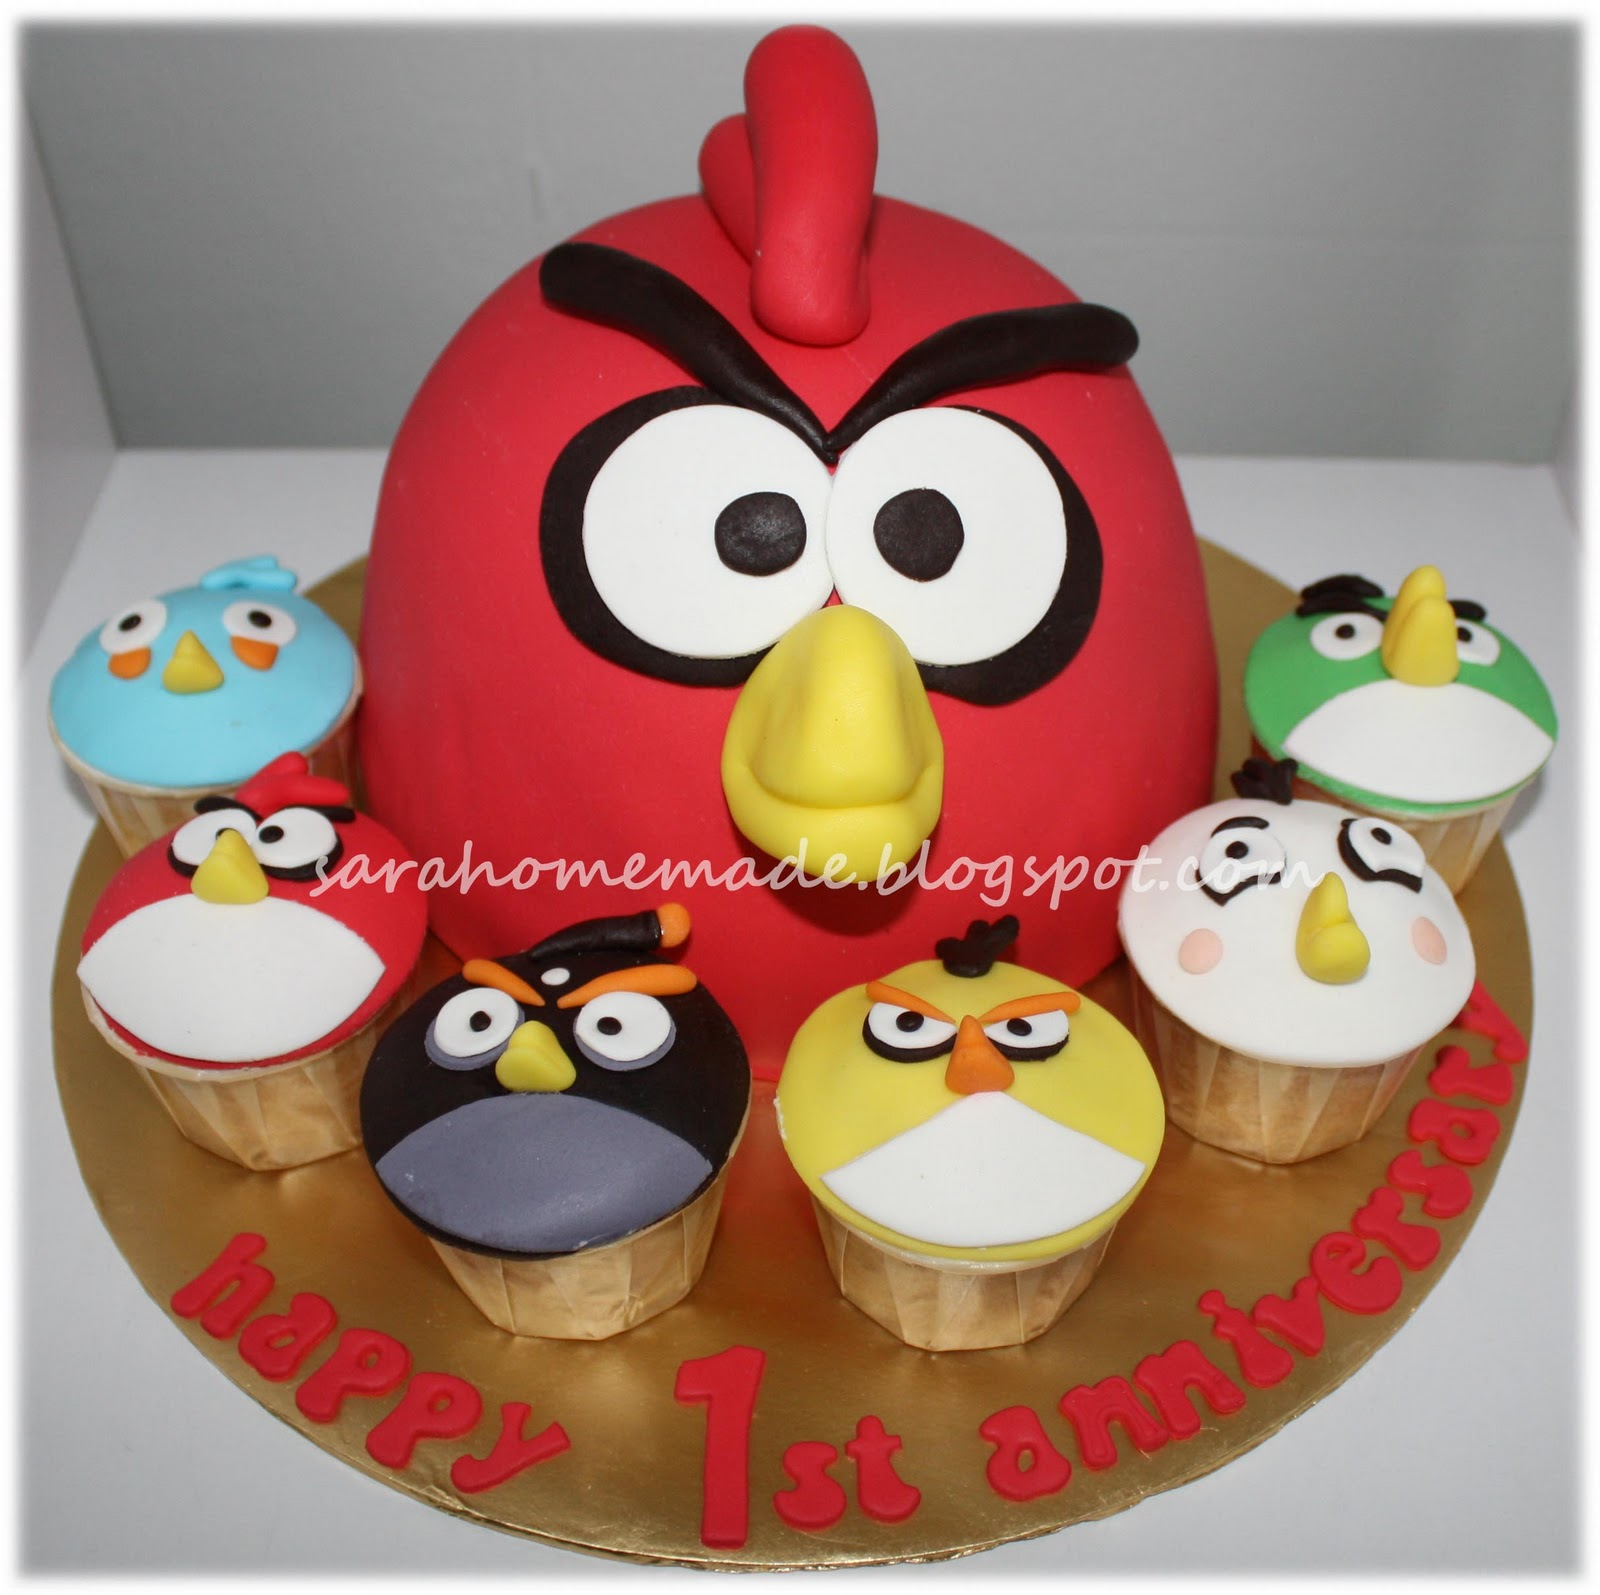 novembre angry bird lensemble - photo #37